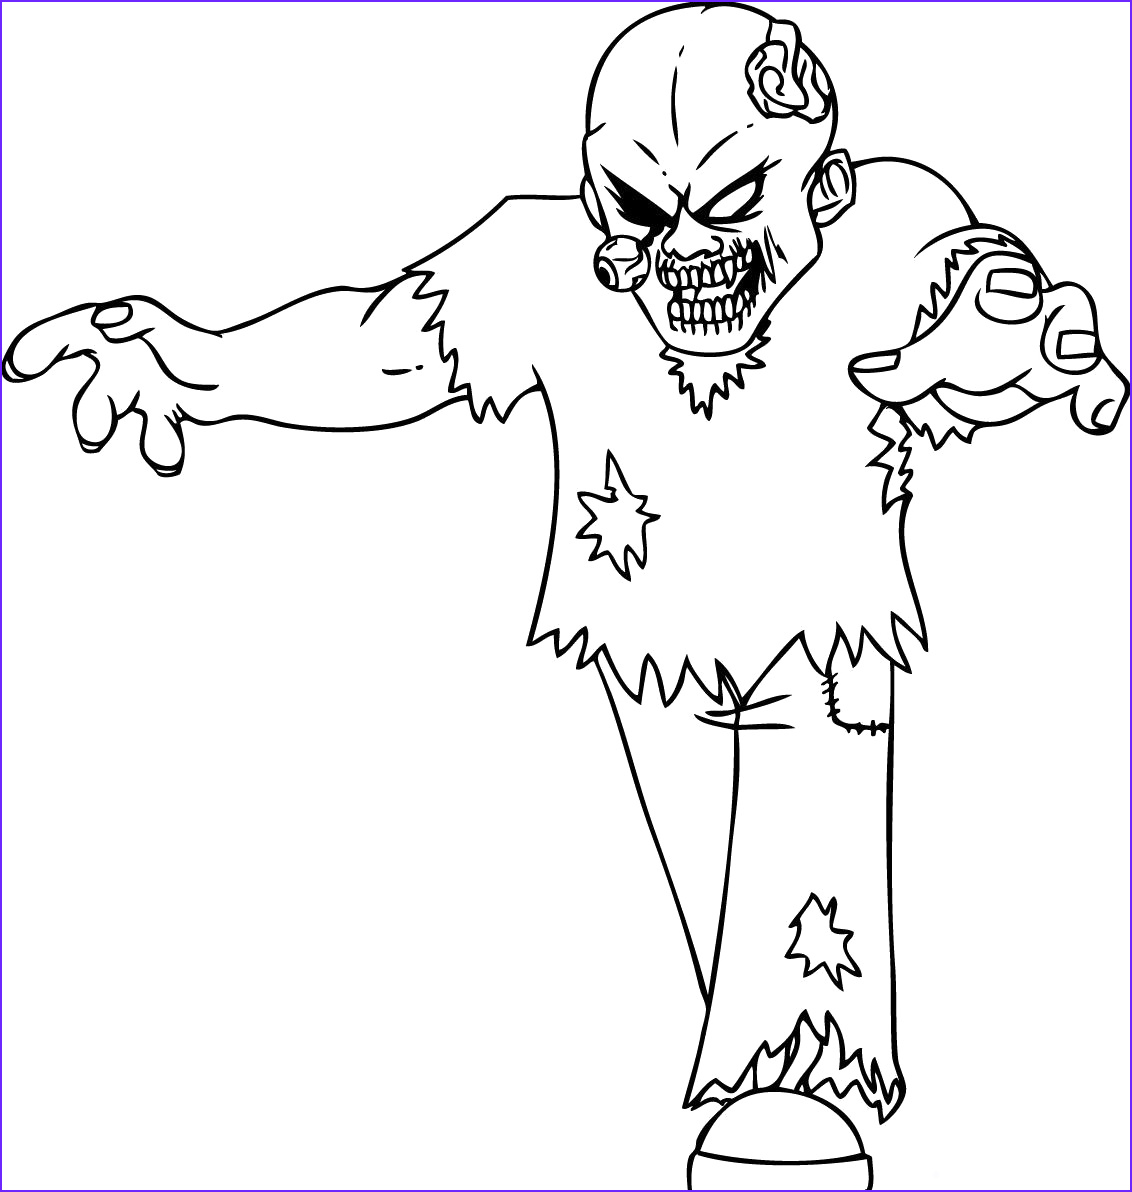 Zombie Coloring Sheet Beautiful Stock Free Printable Zombies Coloring Pages for Kids